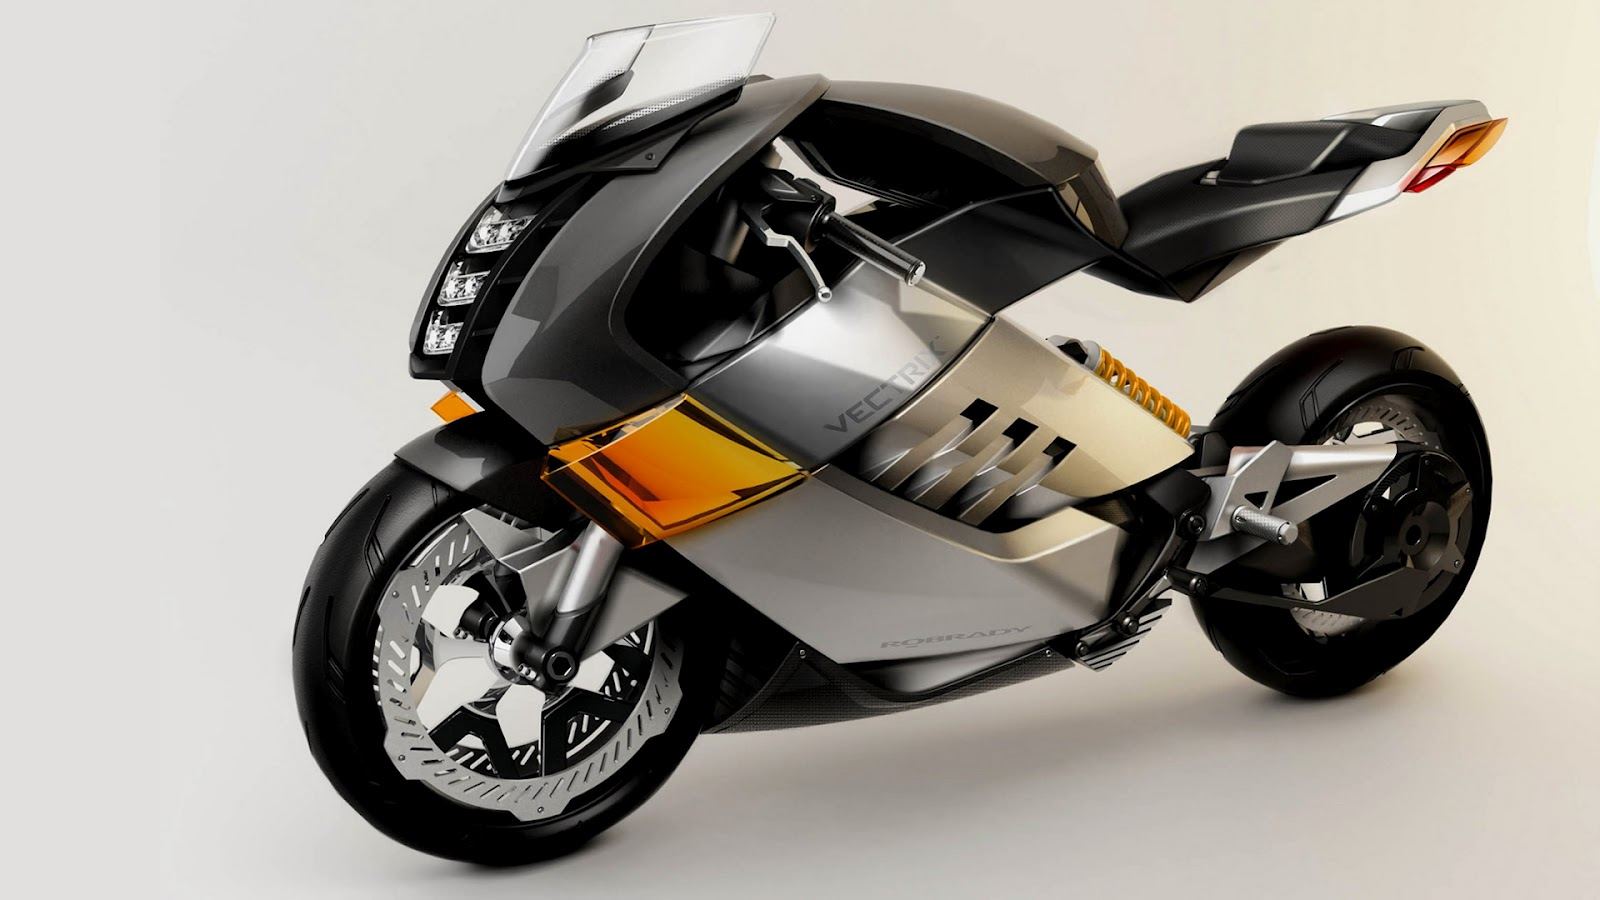 free hd wallpapers: bikes wallpapers